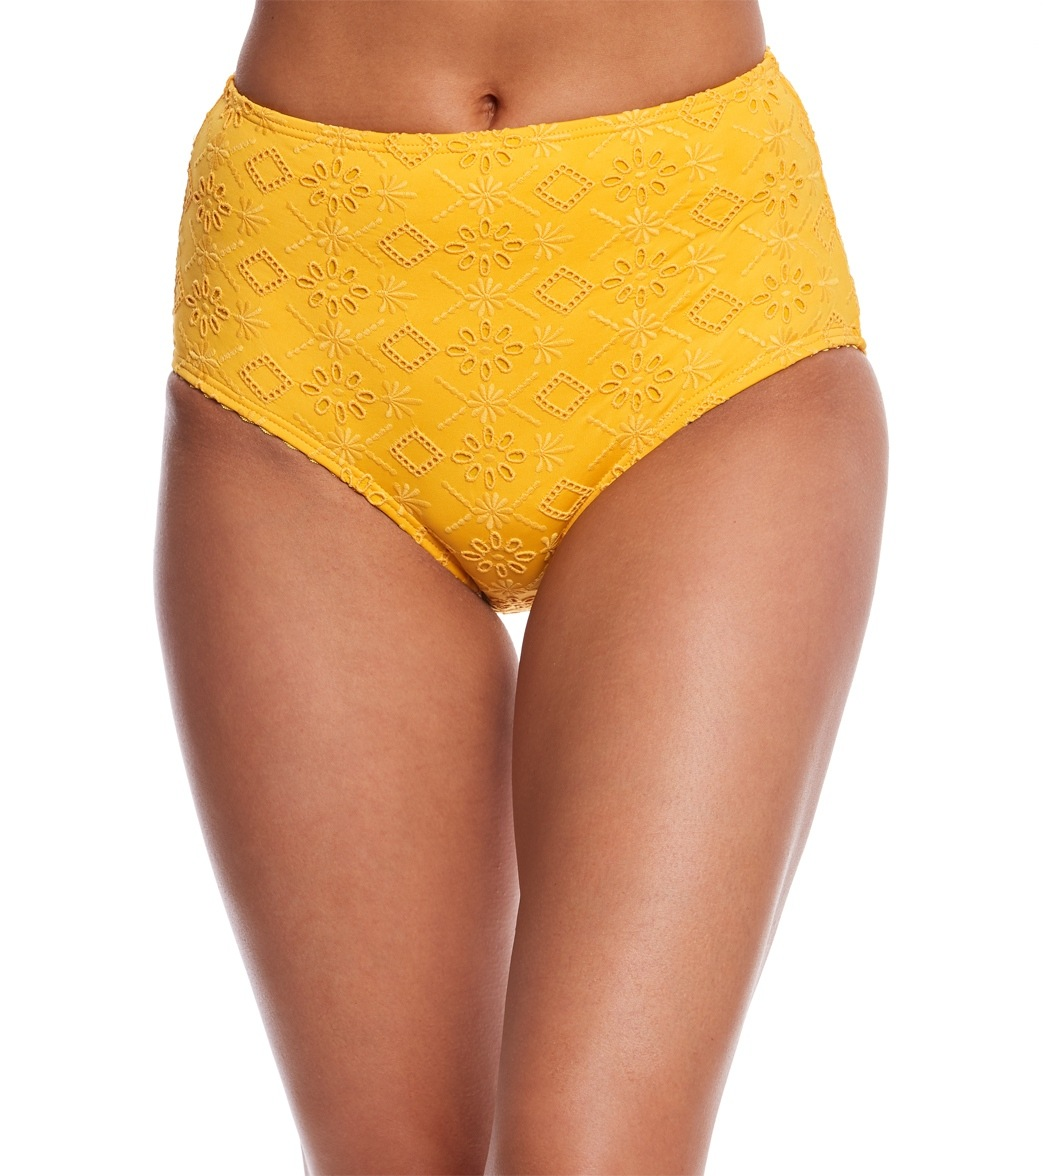 789f3116fe ... Kate Spade New York Embroidered High Waisted Bikini Bottom. Play Video.  MODEL MEASUREMENTS